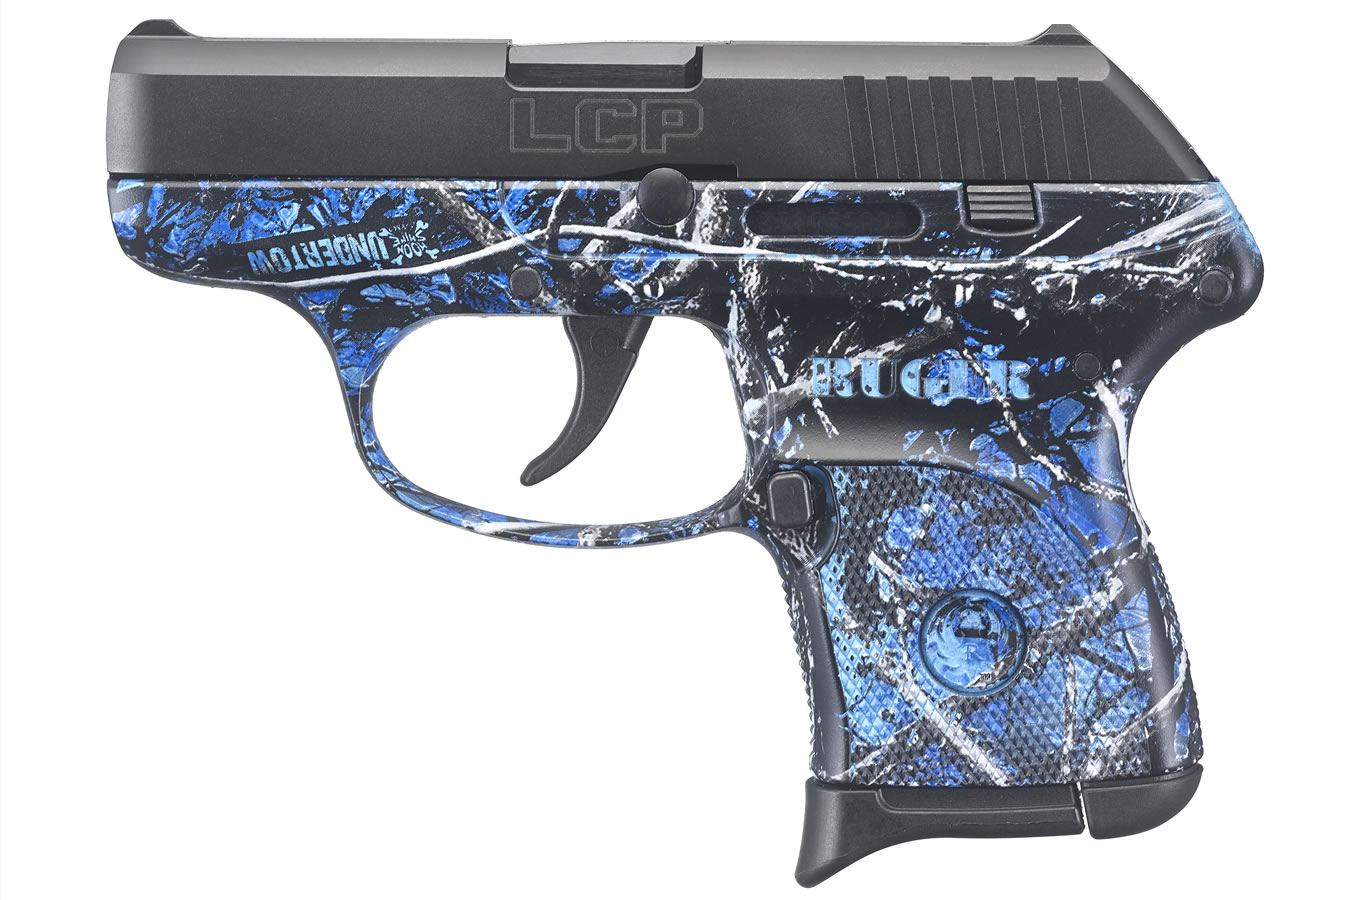 No. 8 Best Selling: RUGER LCP 380 ACPBLACK/ MOONSHINE CAMO UNDERTOW